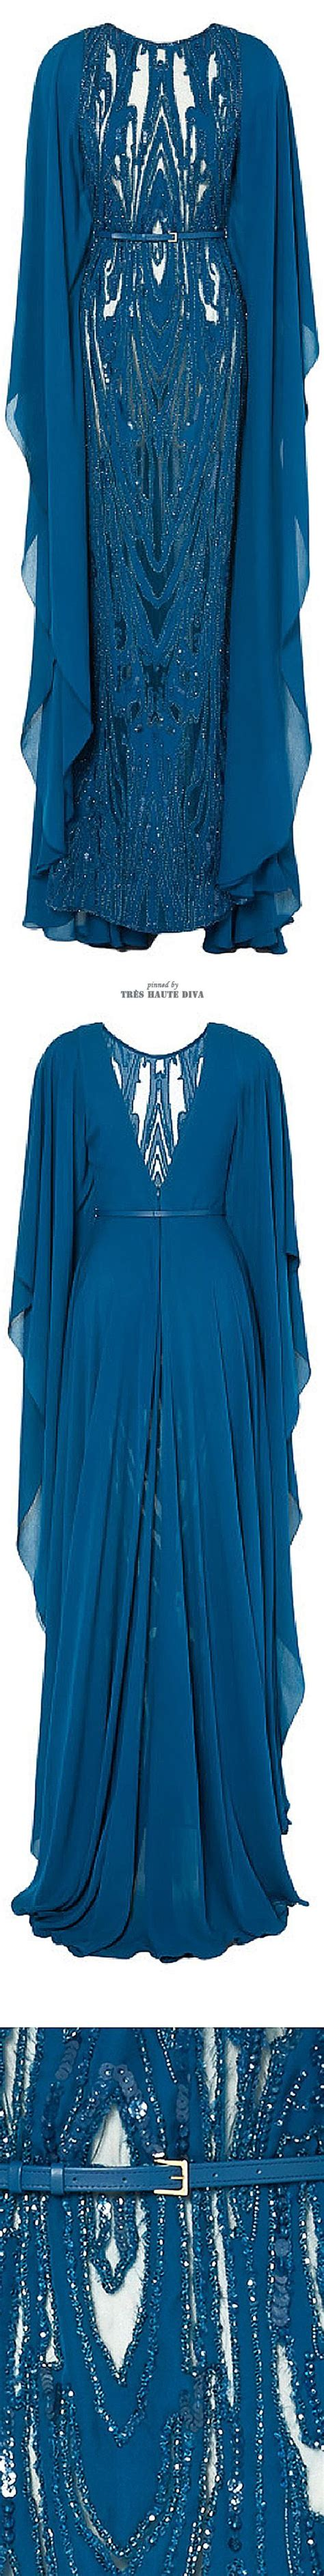 Viby Dress 1679 best things to wear images on dress fashion and